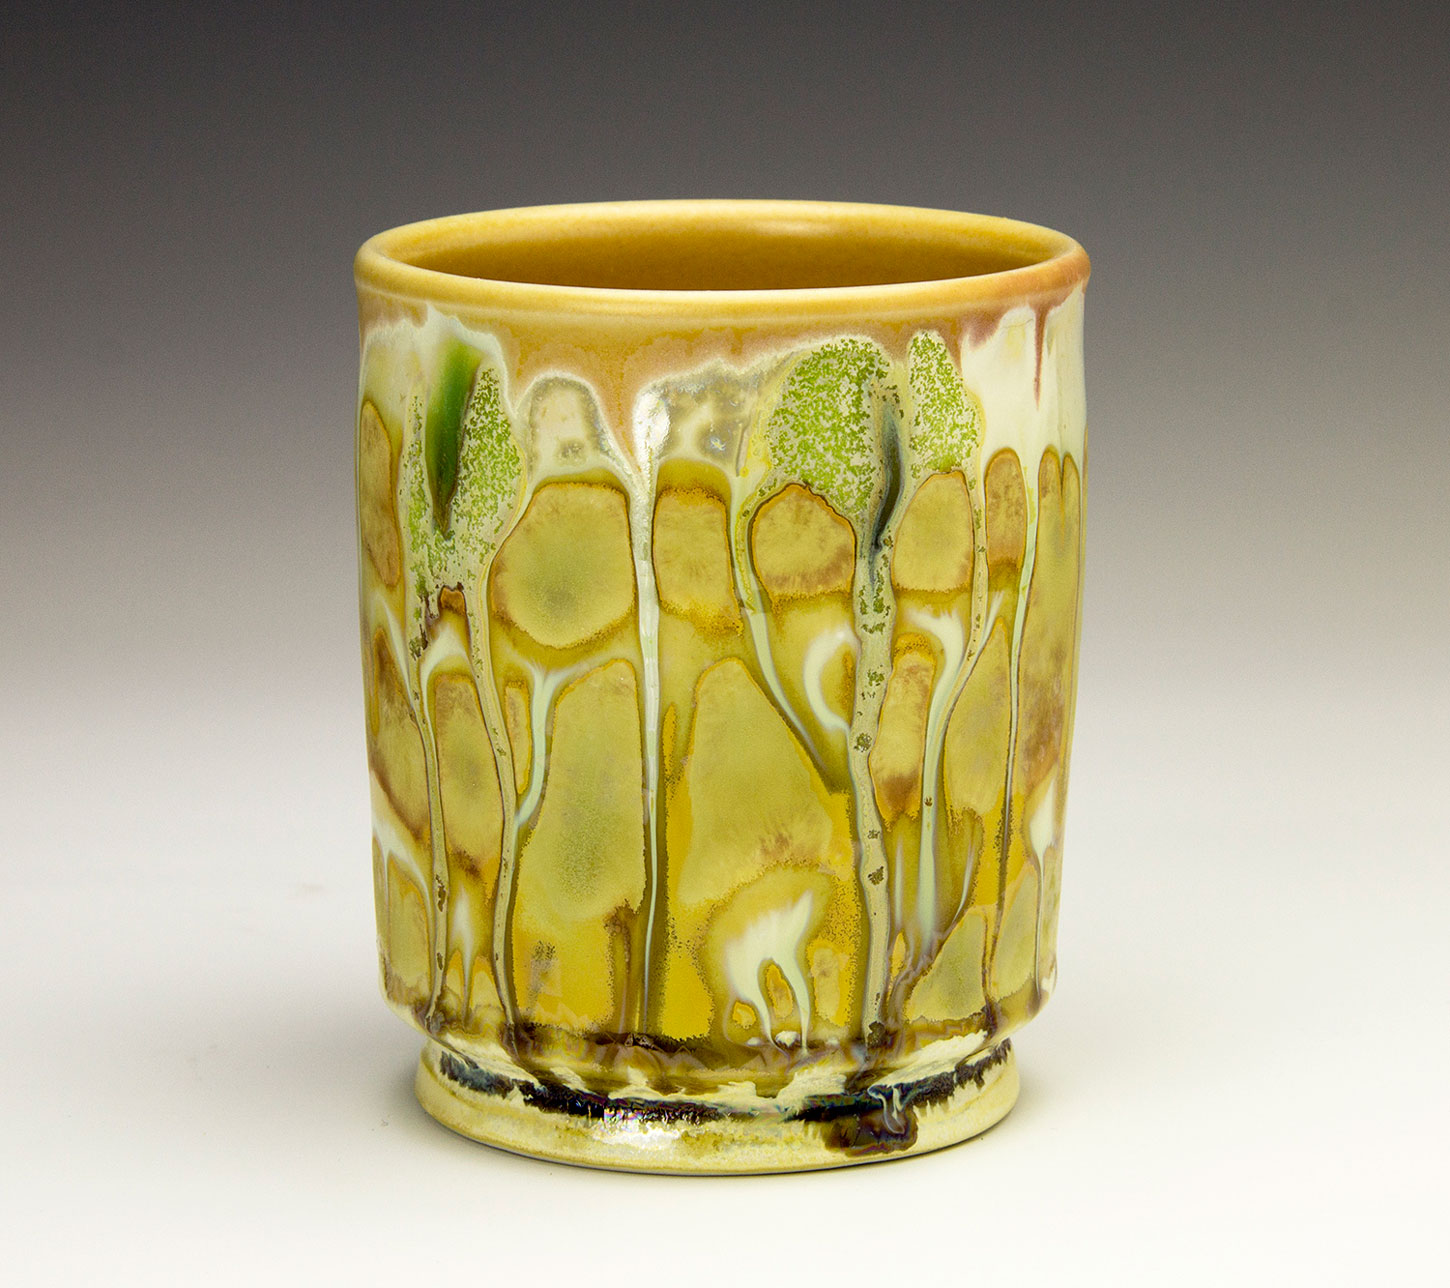 Creative-Flow-Art-Ceramic-Cup-Samantha-Henneke.jpg